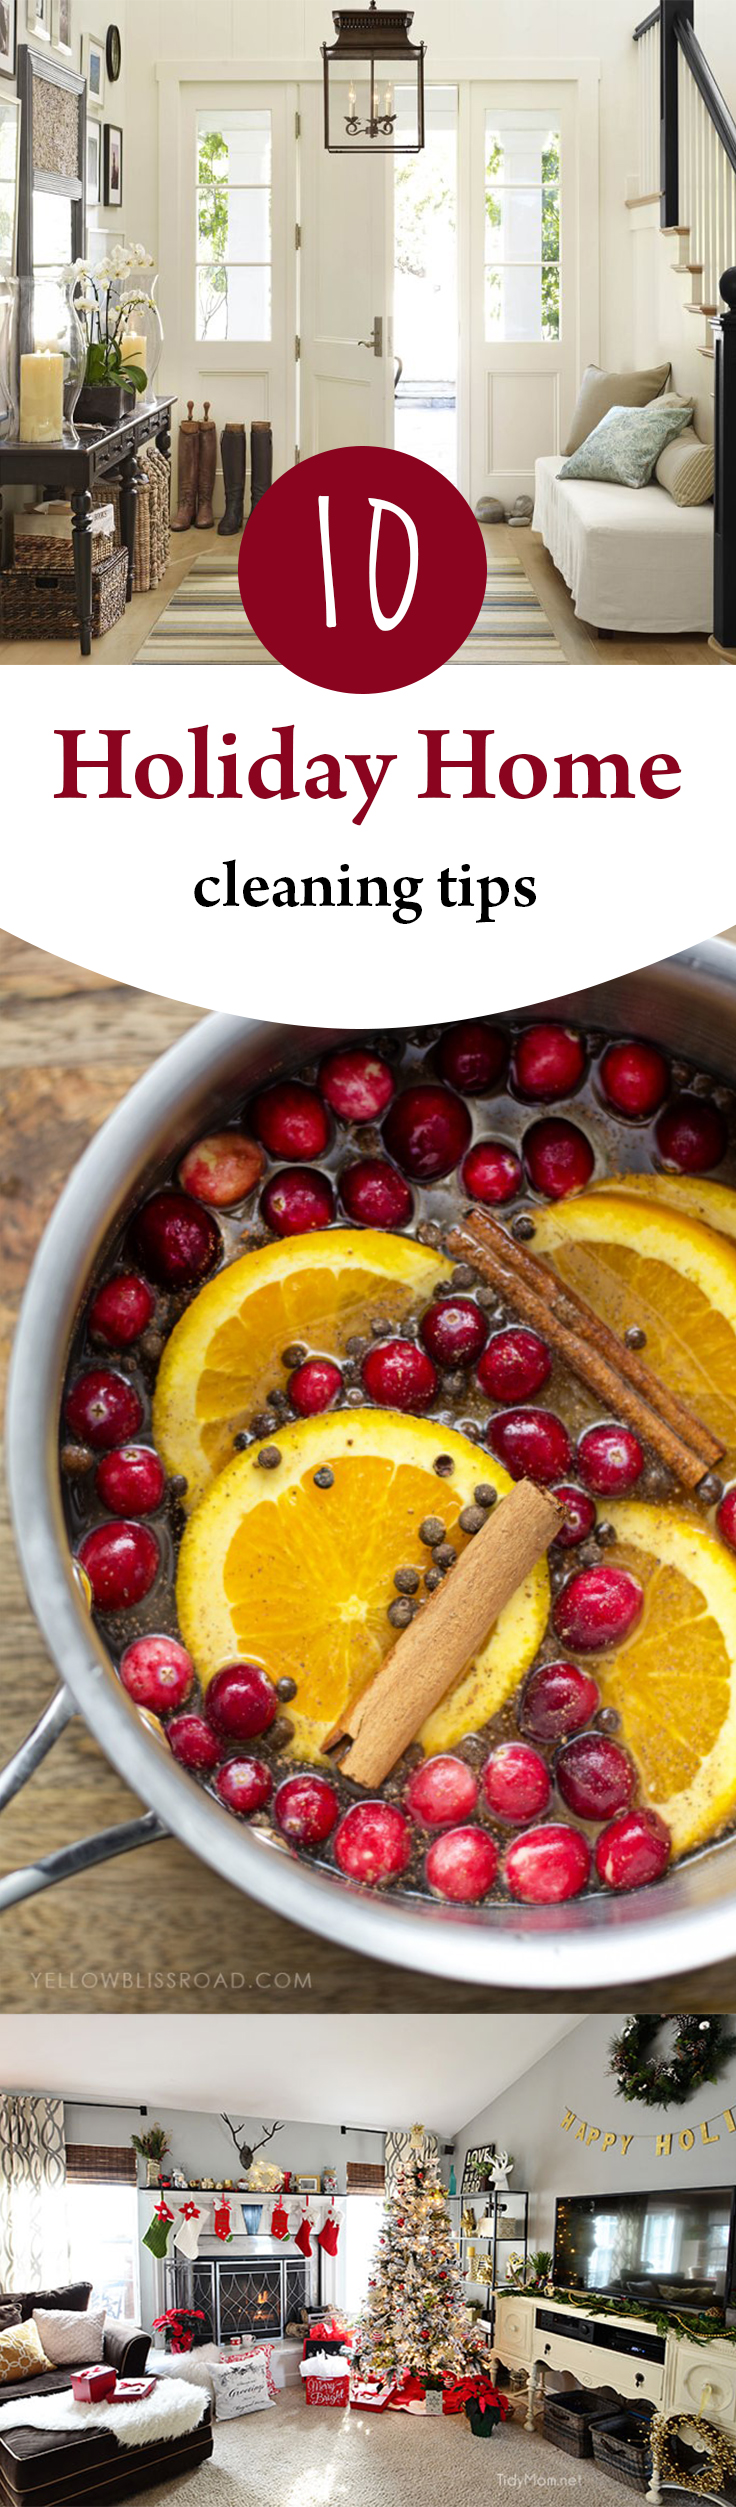 Holiday Cleaning Hacks, Cleaning Tips and Tricks, How to Clean for Holiday, Cleaning for Holiday Guests, Cleaning Tips, Easy Home Cleaning Tips, Cleaning Ideas, Quick Cleaning Ideas, Popular Pin